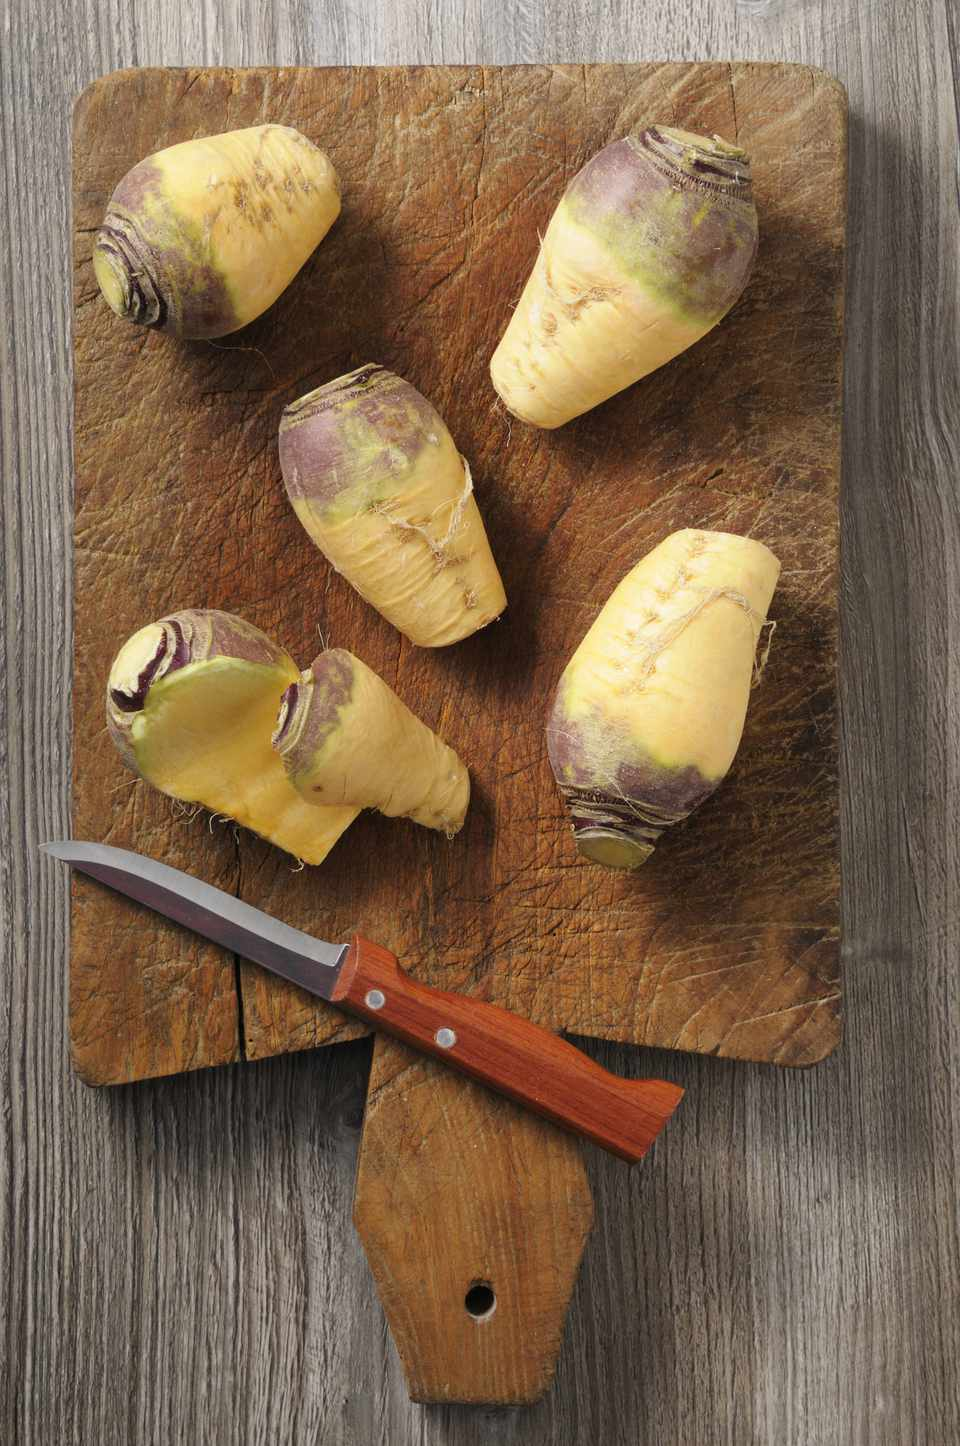 rutabaga on a cutting board